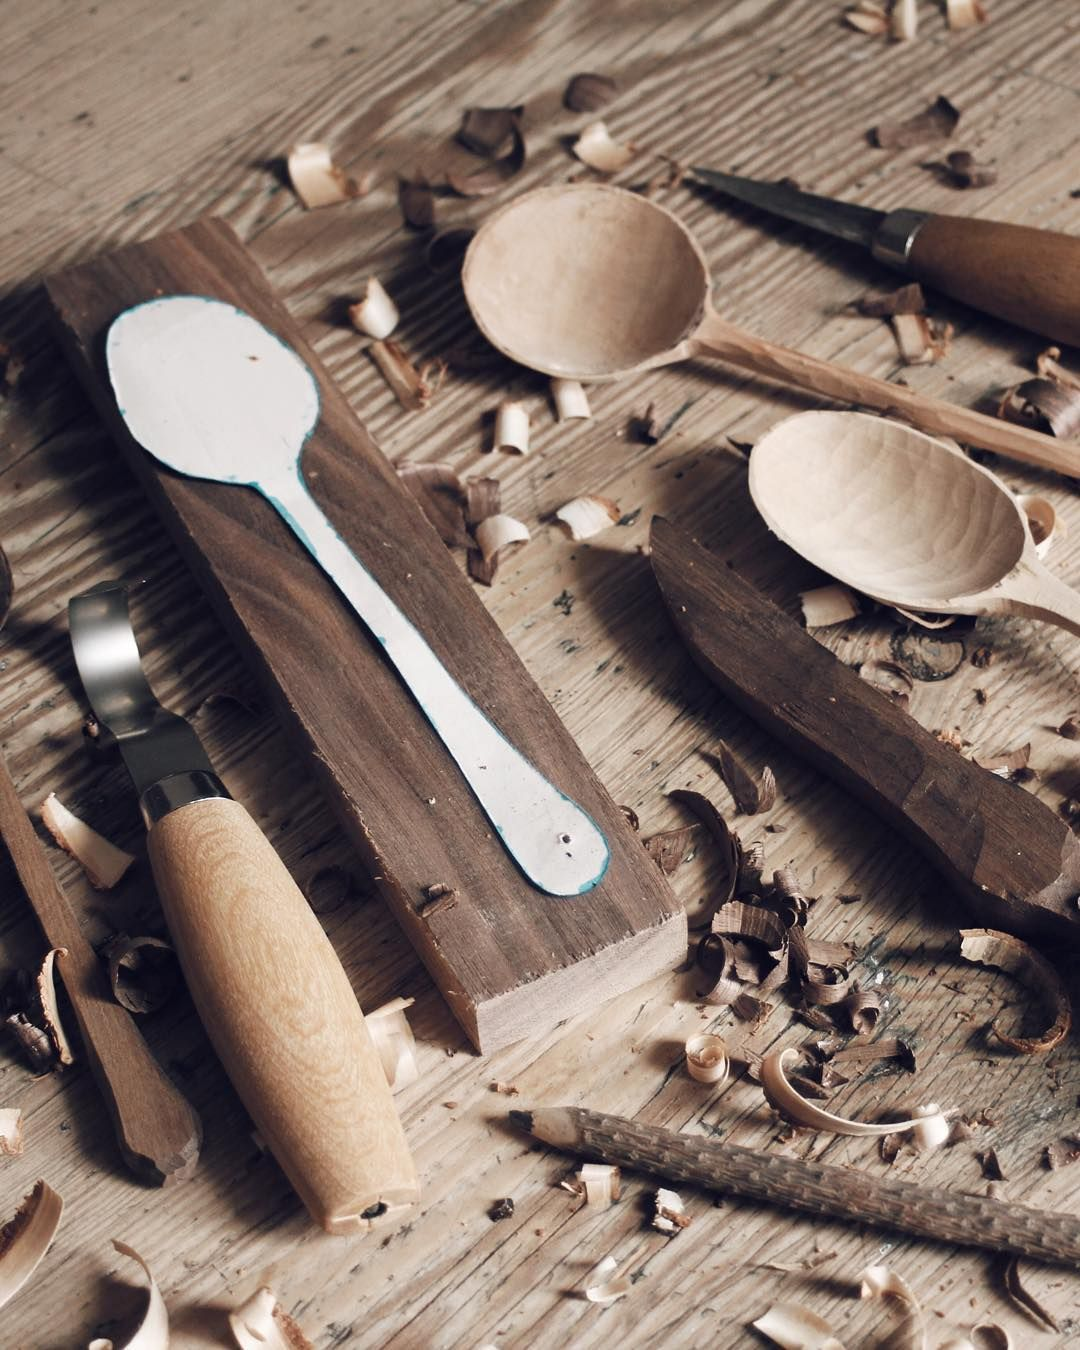 Learn the art of spoon carving with Max from @forestandfound at our @westelmuk pop-up. The course is limited to 6 spaces and tickets just went live on the site.  Saturday 31st October 1:30pm - 4:30pm wed love to see you there.